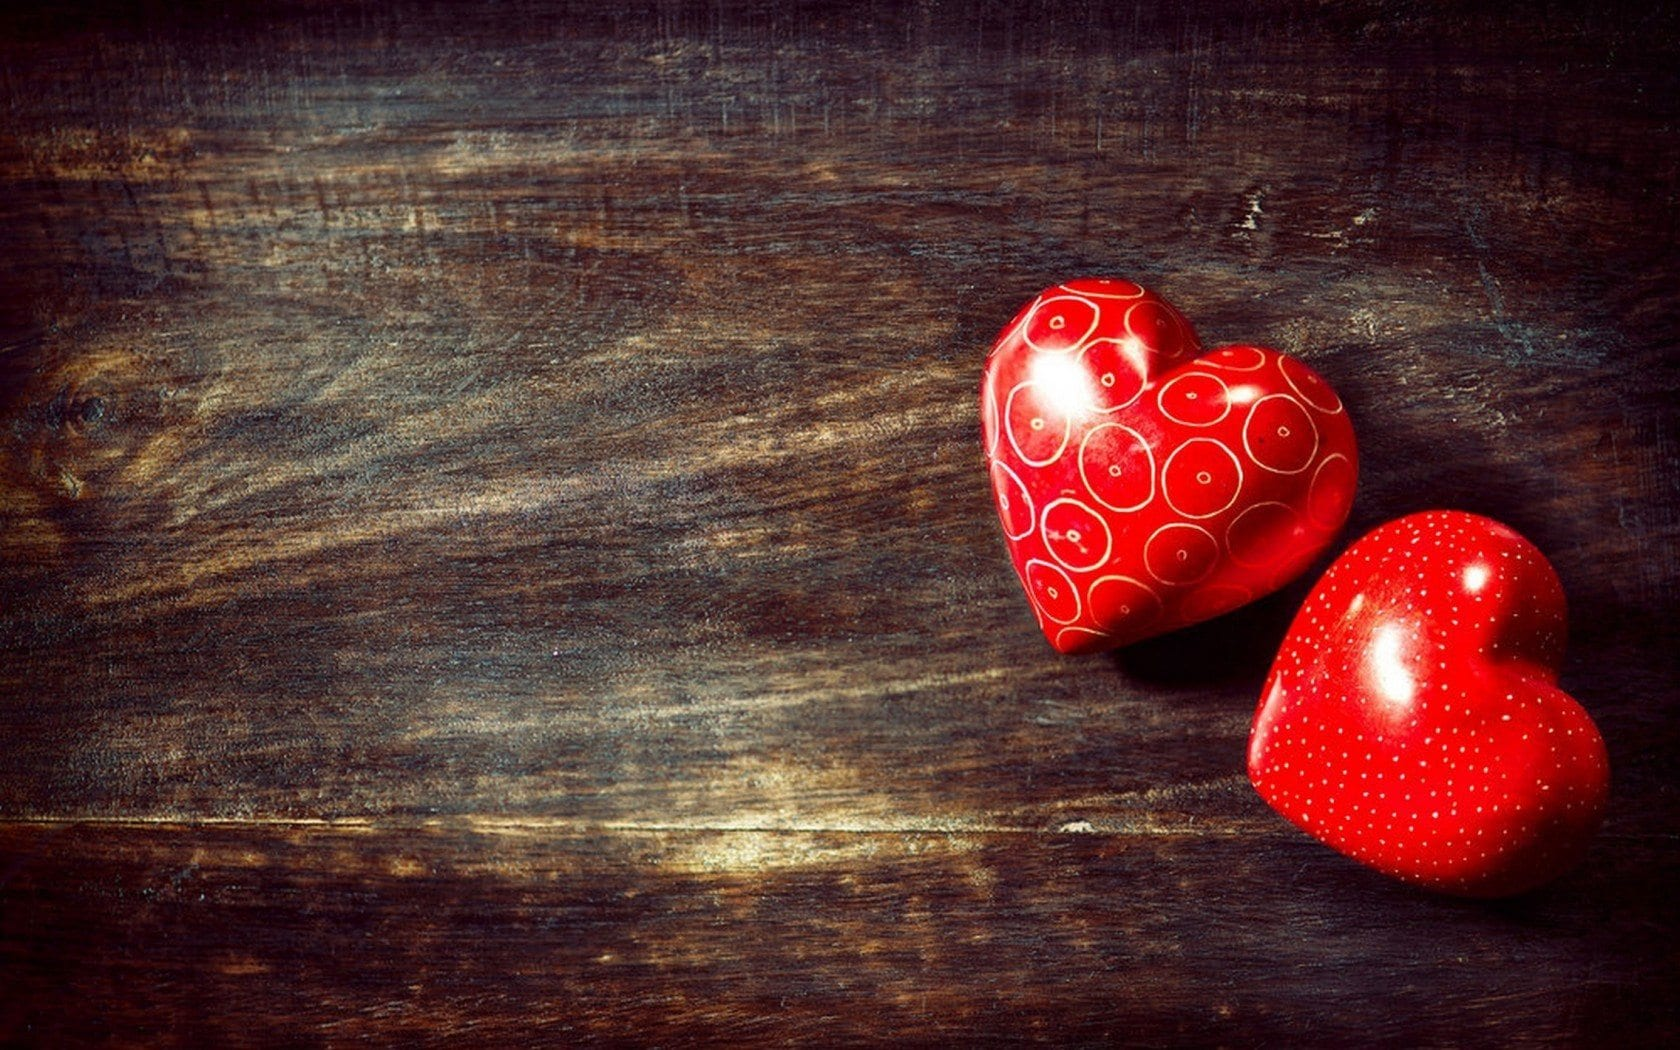 Love Wallpaper With Images : Love Images / Love HD Wallpaper